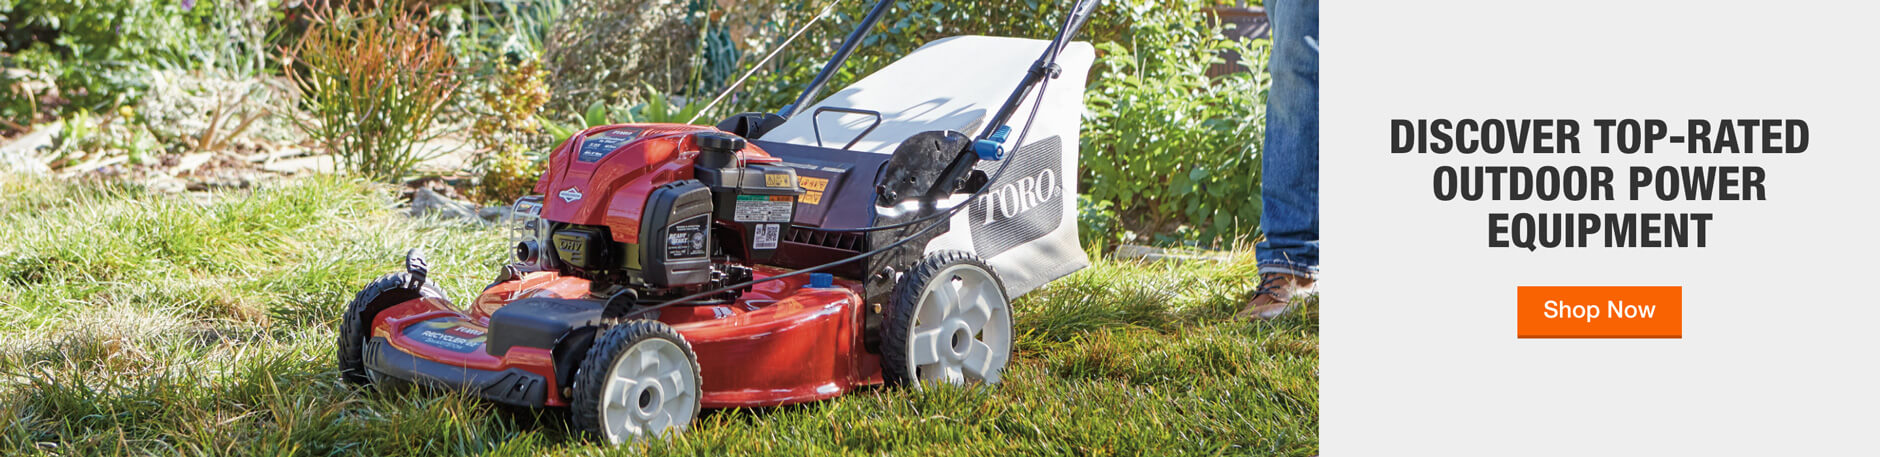 DISCOVER TOP-RATED OUTDOOR POWER EQUIPMENT